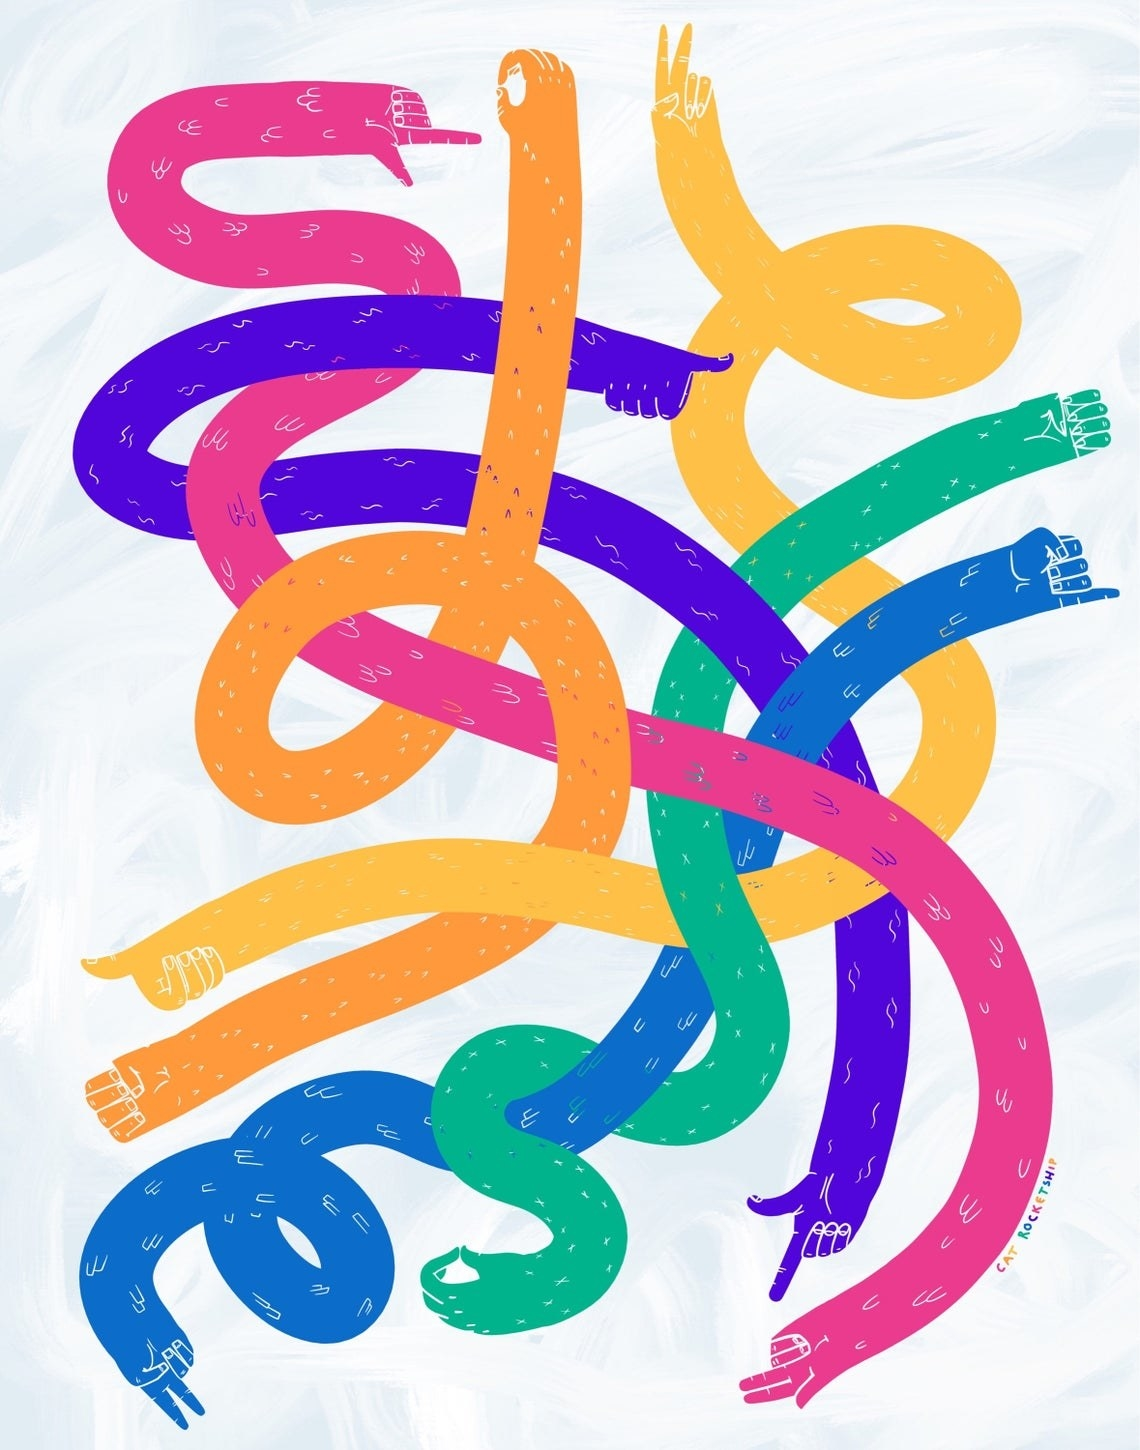 An abstract piece with multicolored arms weaving through each other. The hands on each arm spell the letters L, O, V, E, in American sign language.